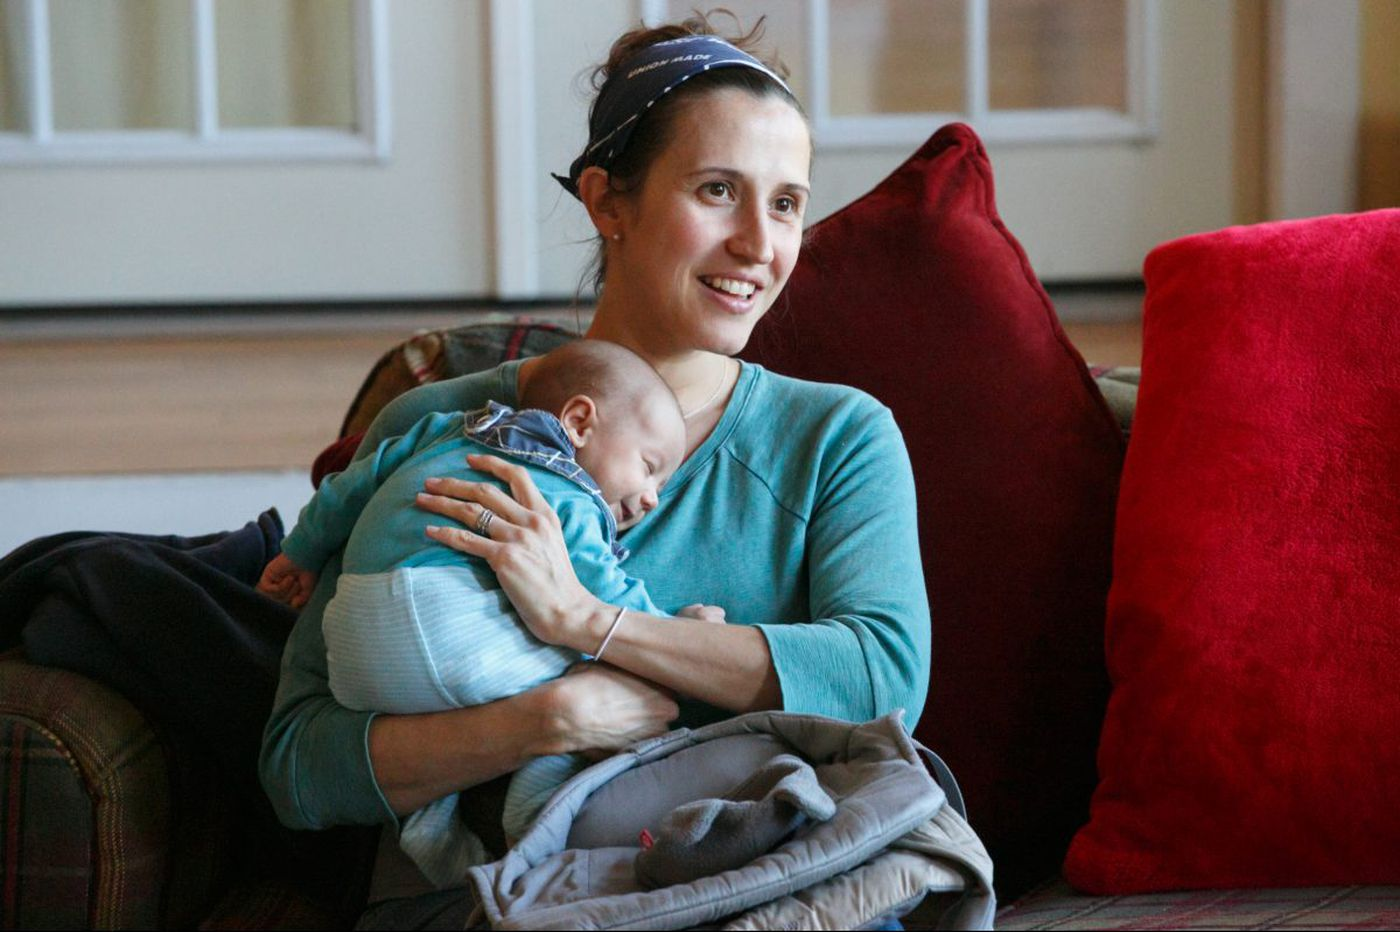 How can new moms make breastfeeding work? Be realistic, say Philly women